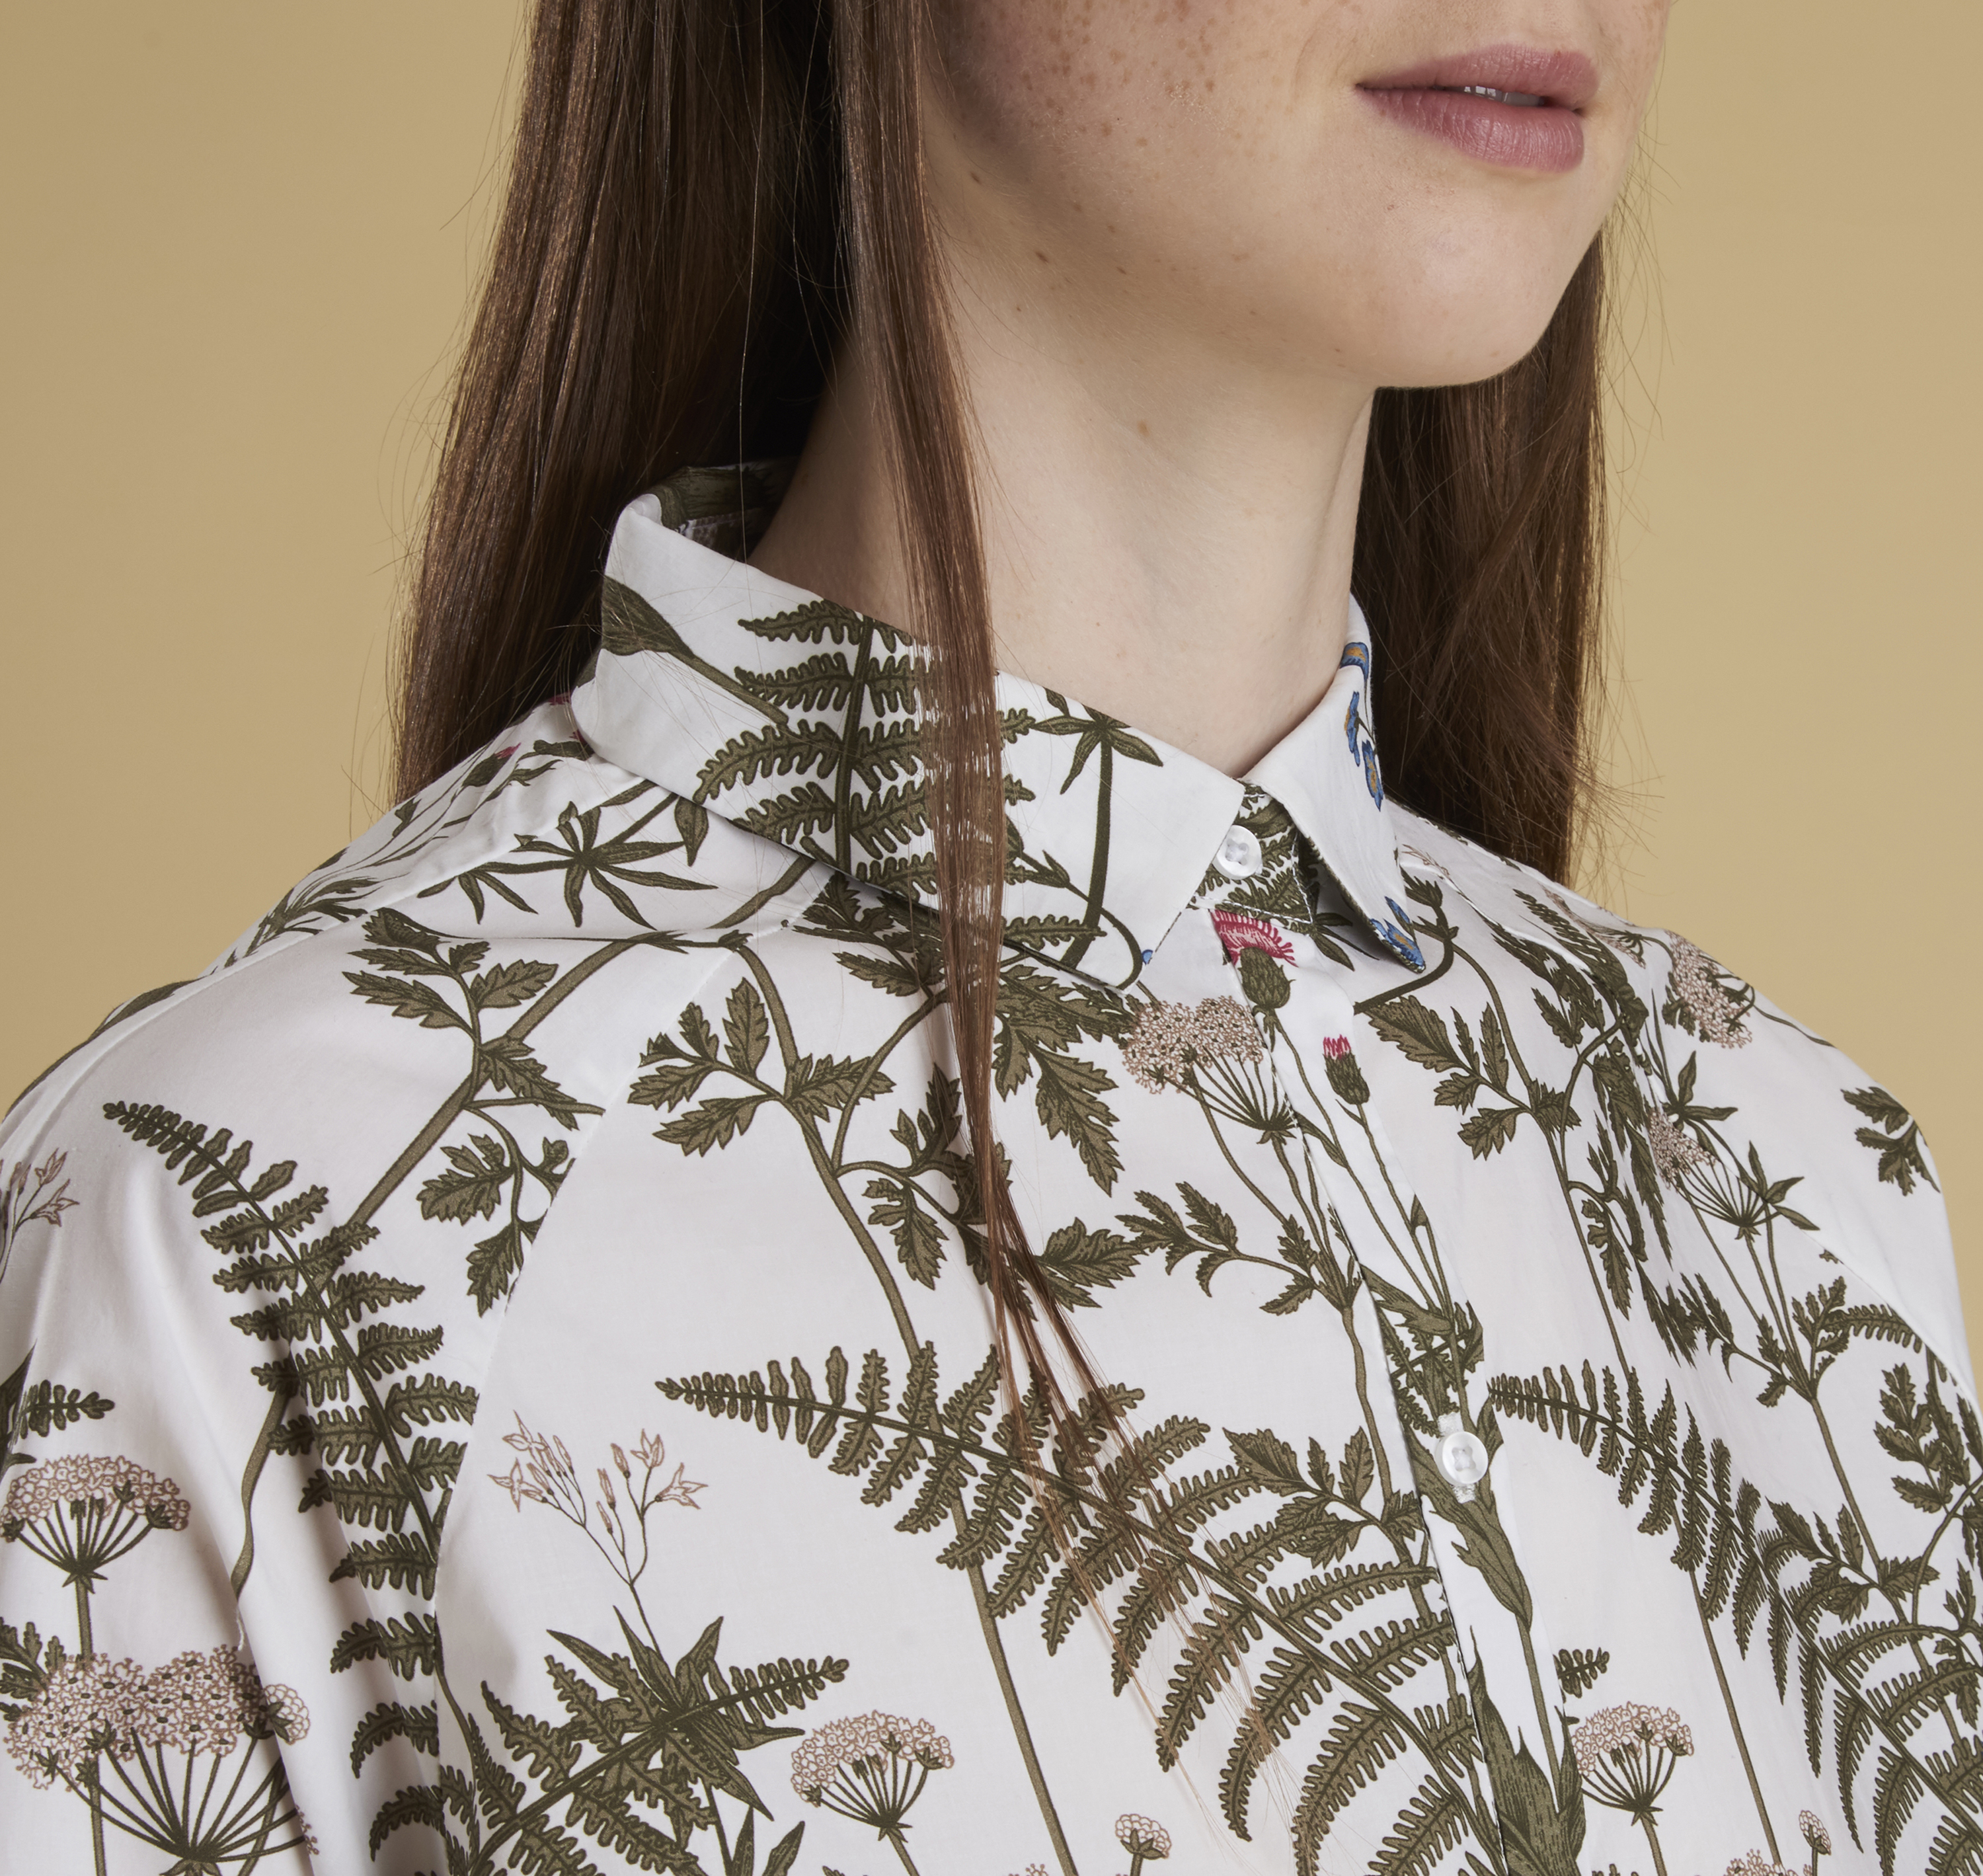 Wildflower Printed Shirt - Illustration n°5